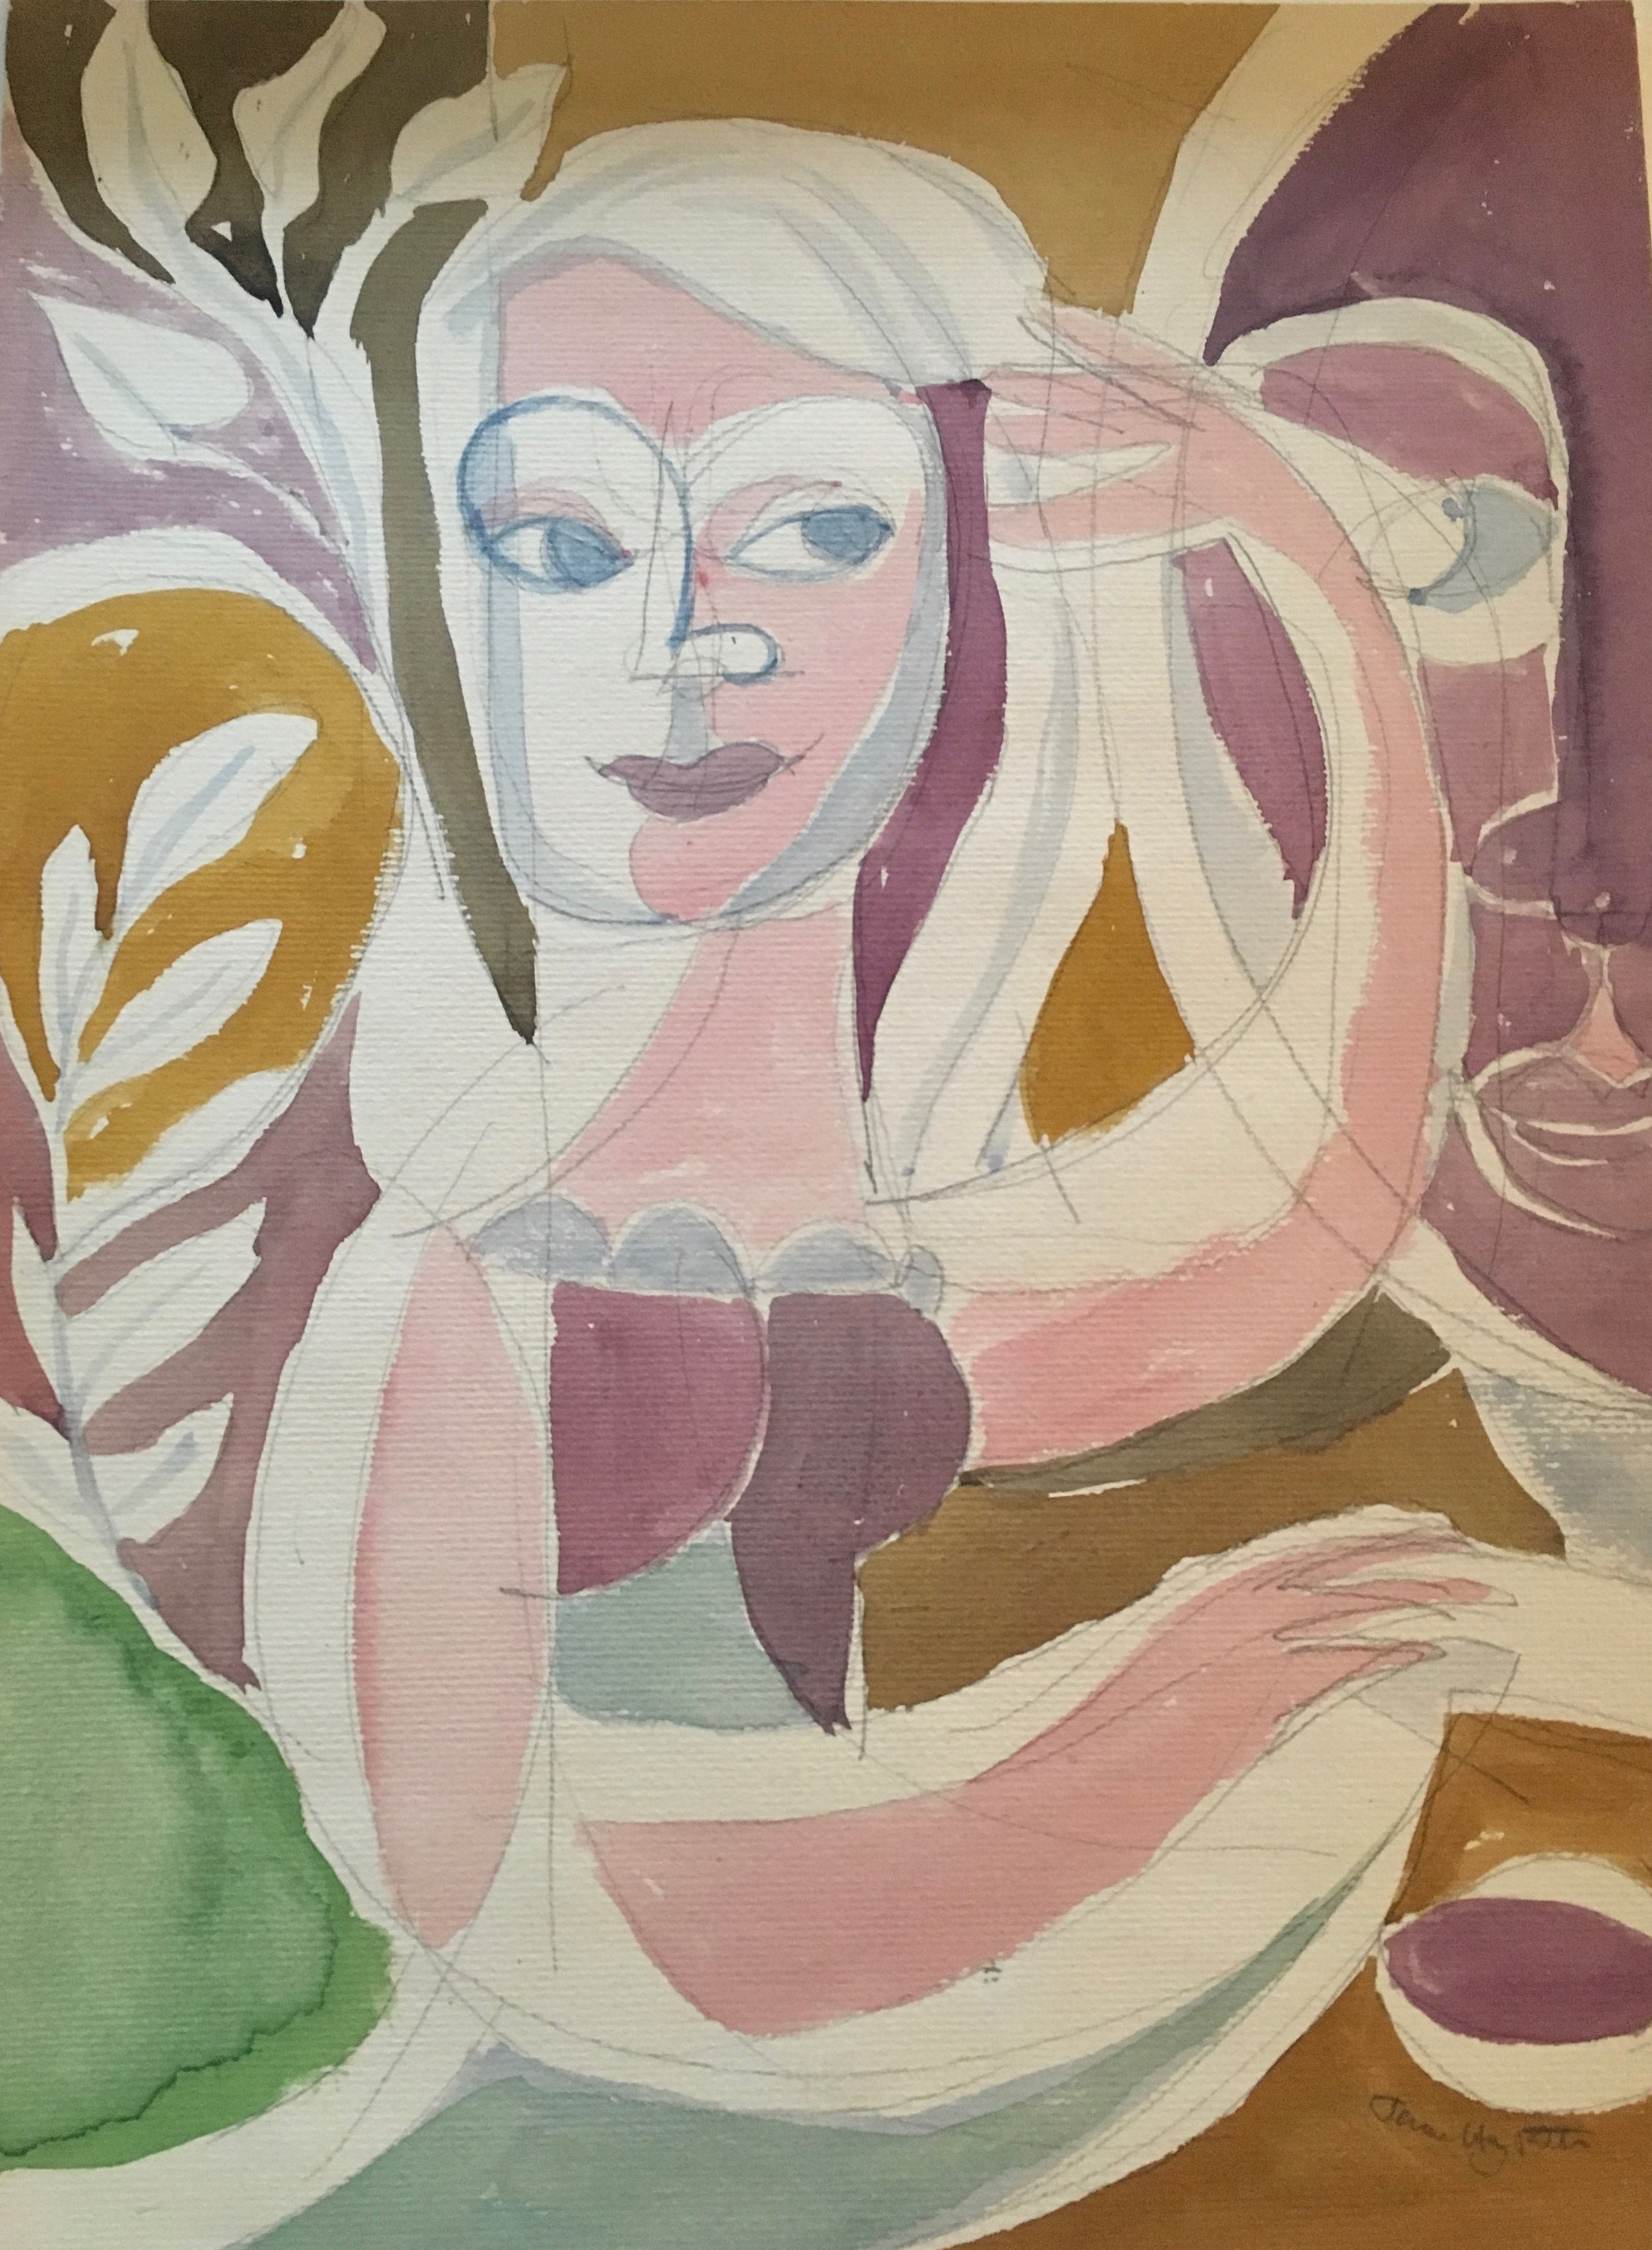 JEROME HENRY ROTH   Make-up 1950's  gouache and pencil on paper, 14 1/2 x 11 inches